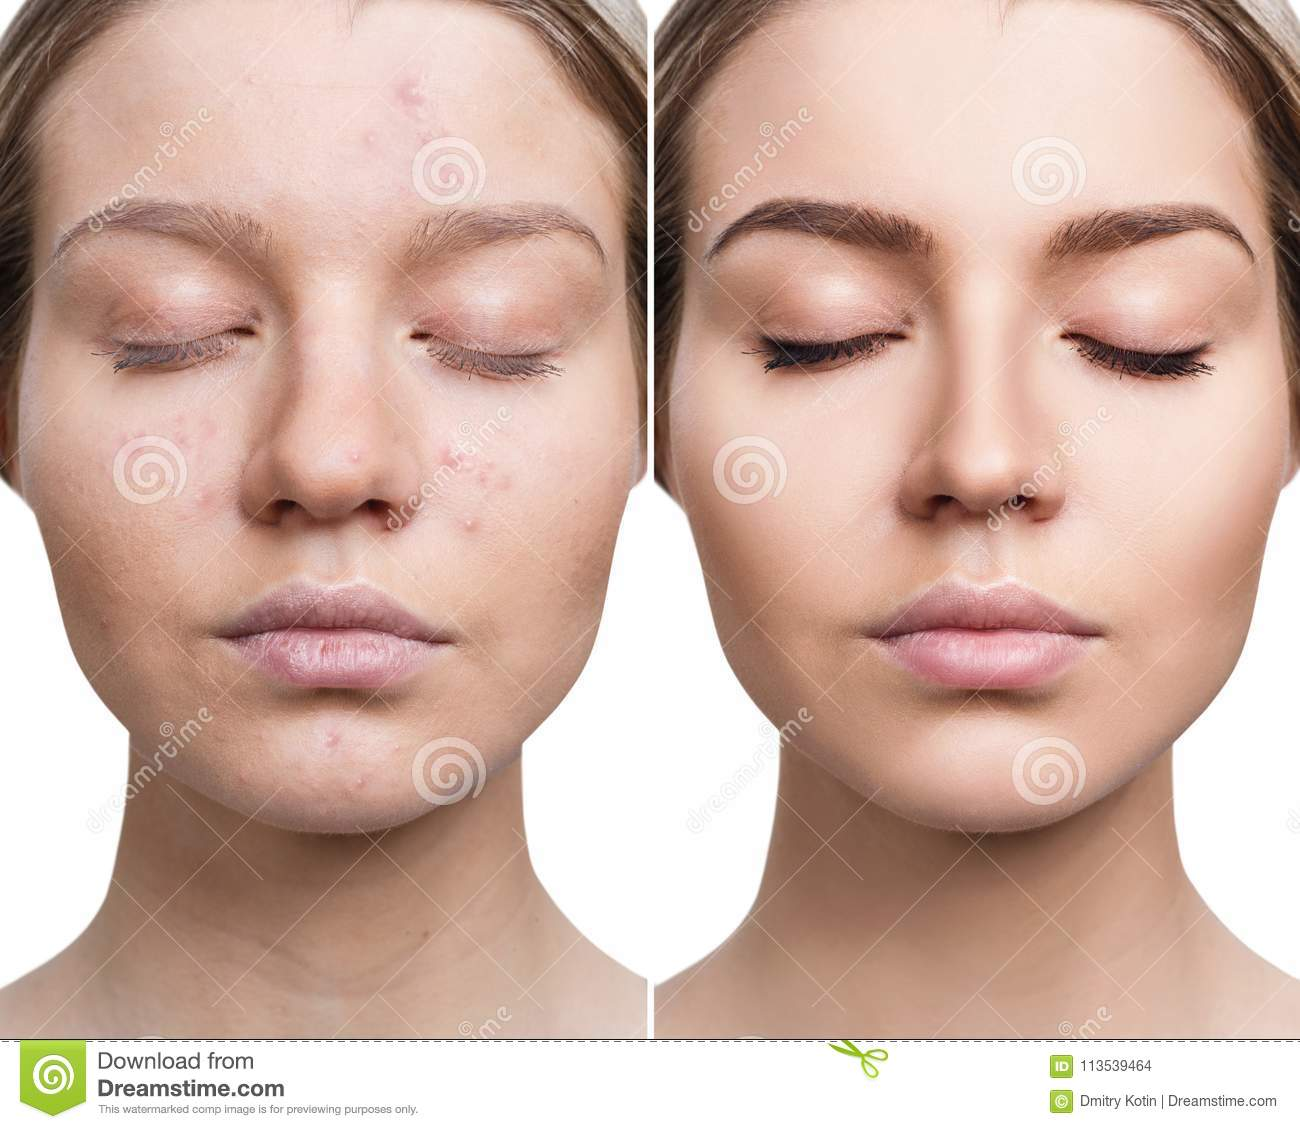 Woman With Acne Before And After Treatment Stock Photo Image Of Cosmetic Makeup 113539464